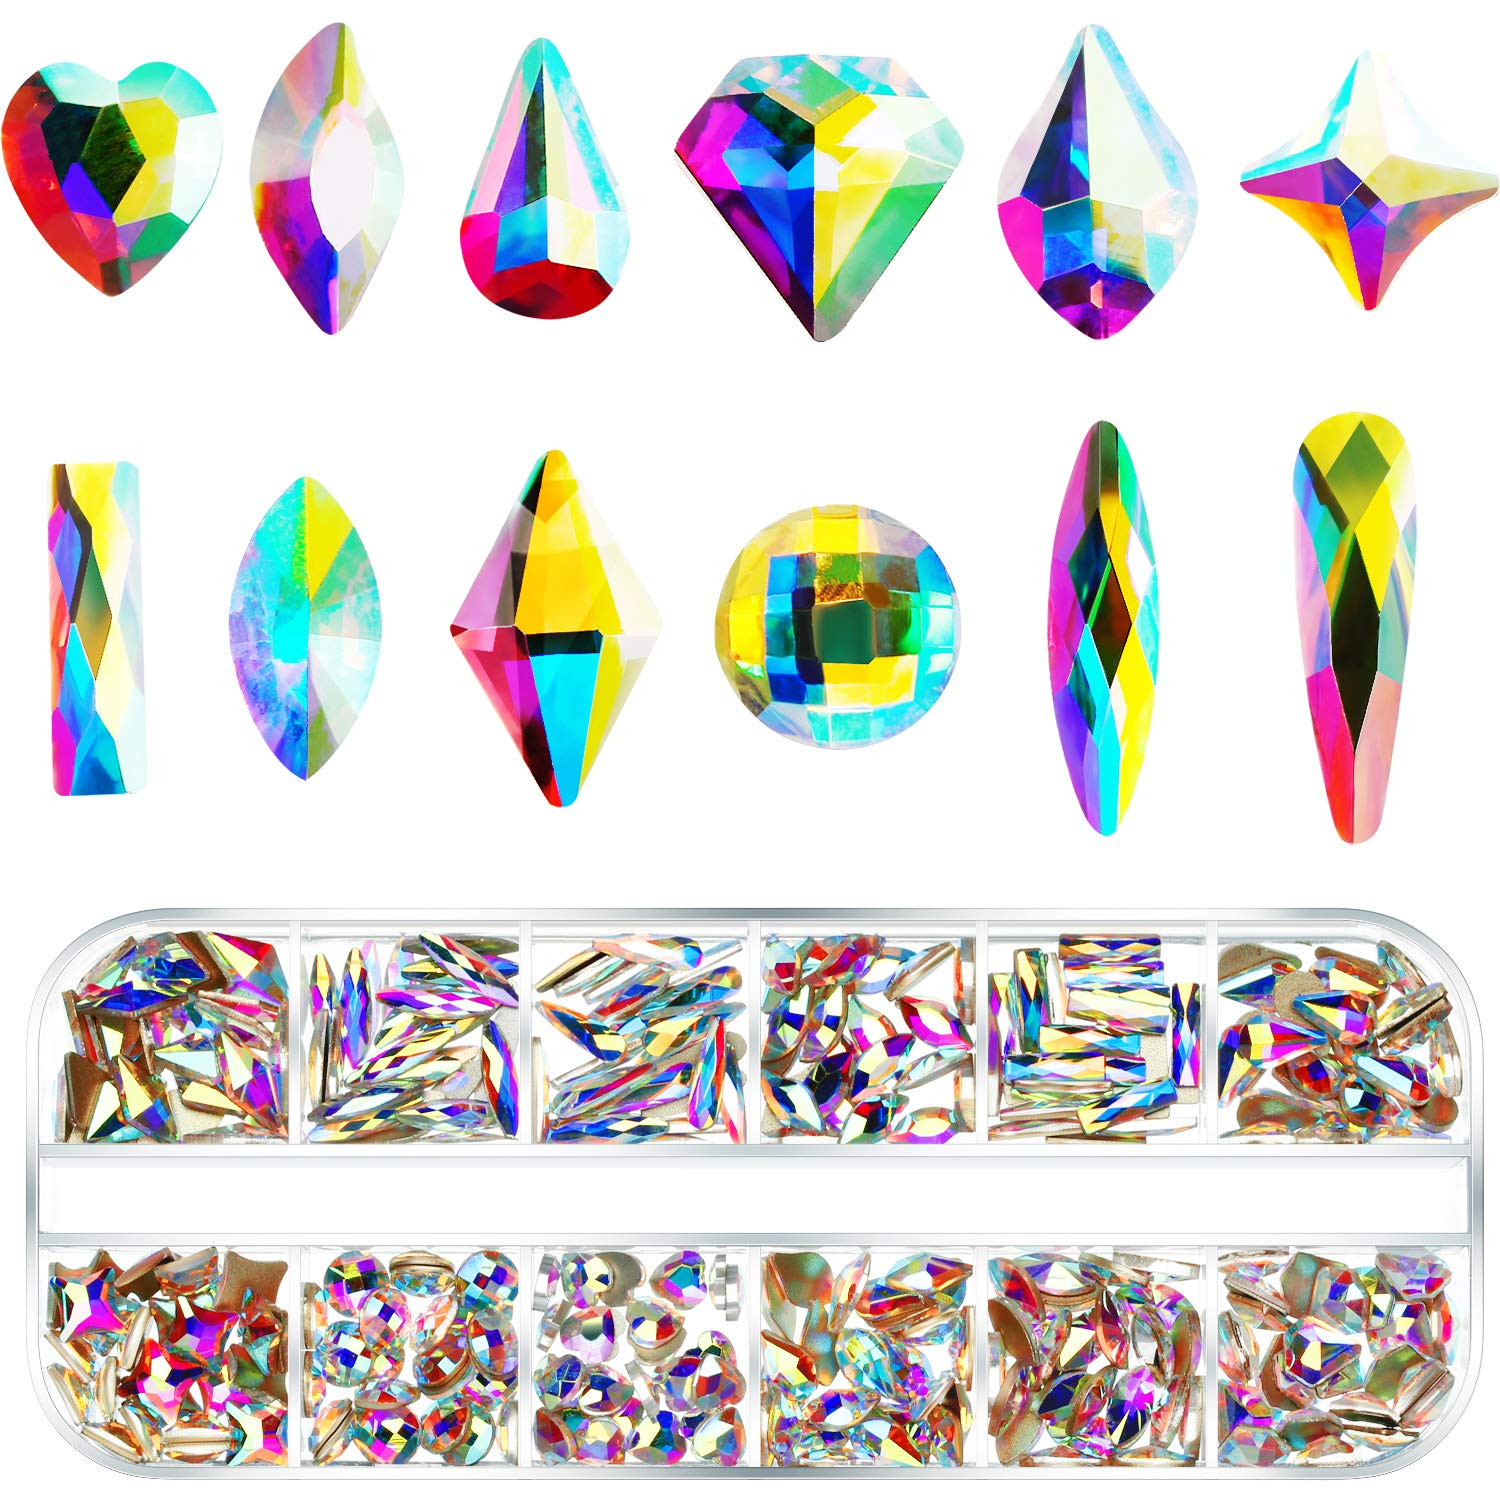 300 Pieces Nail Art Crystals Rhinestones AB Nail Gems Flat Back Crystals Gems for Nails, Mix Shape Glass Rhinestone Stones Beads for Clothes, Face, Jewelry by Tatuo